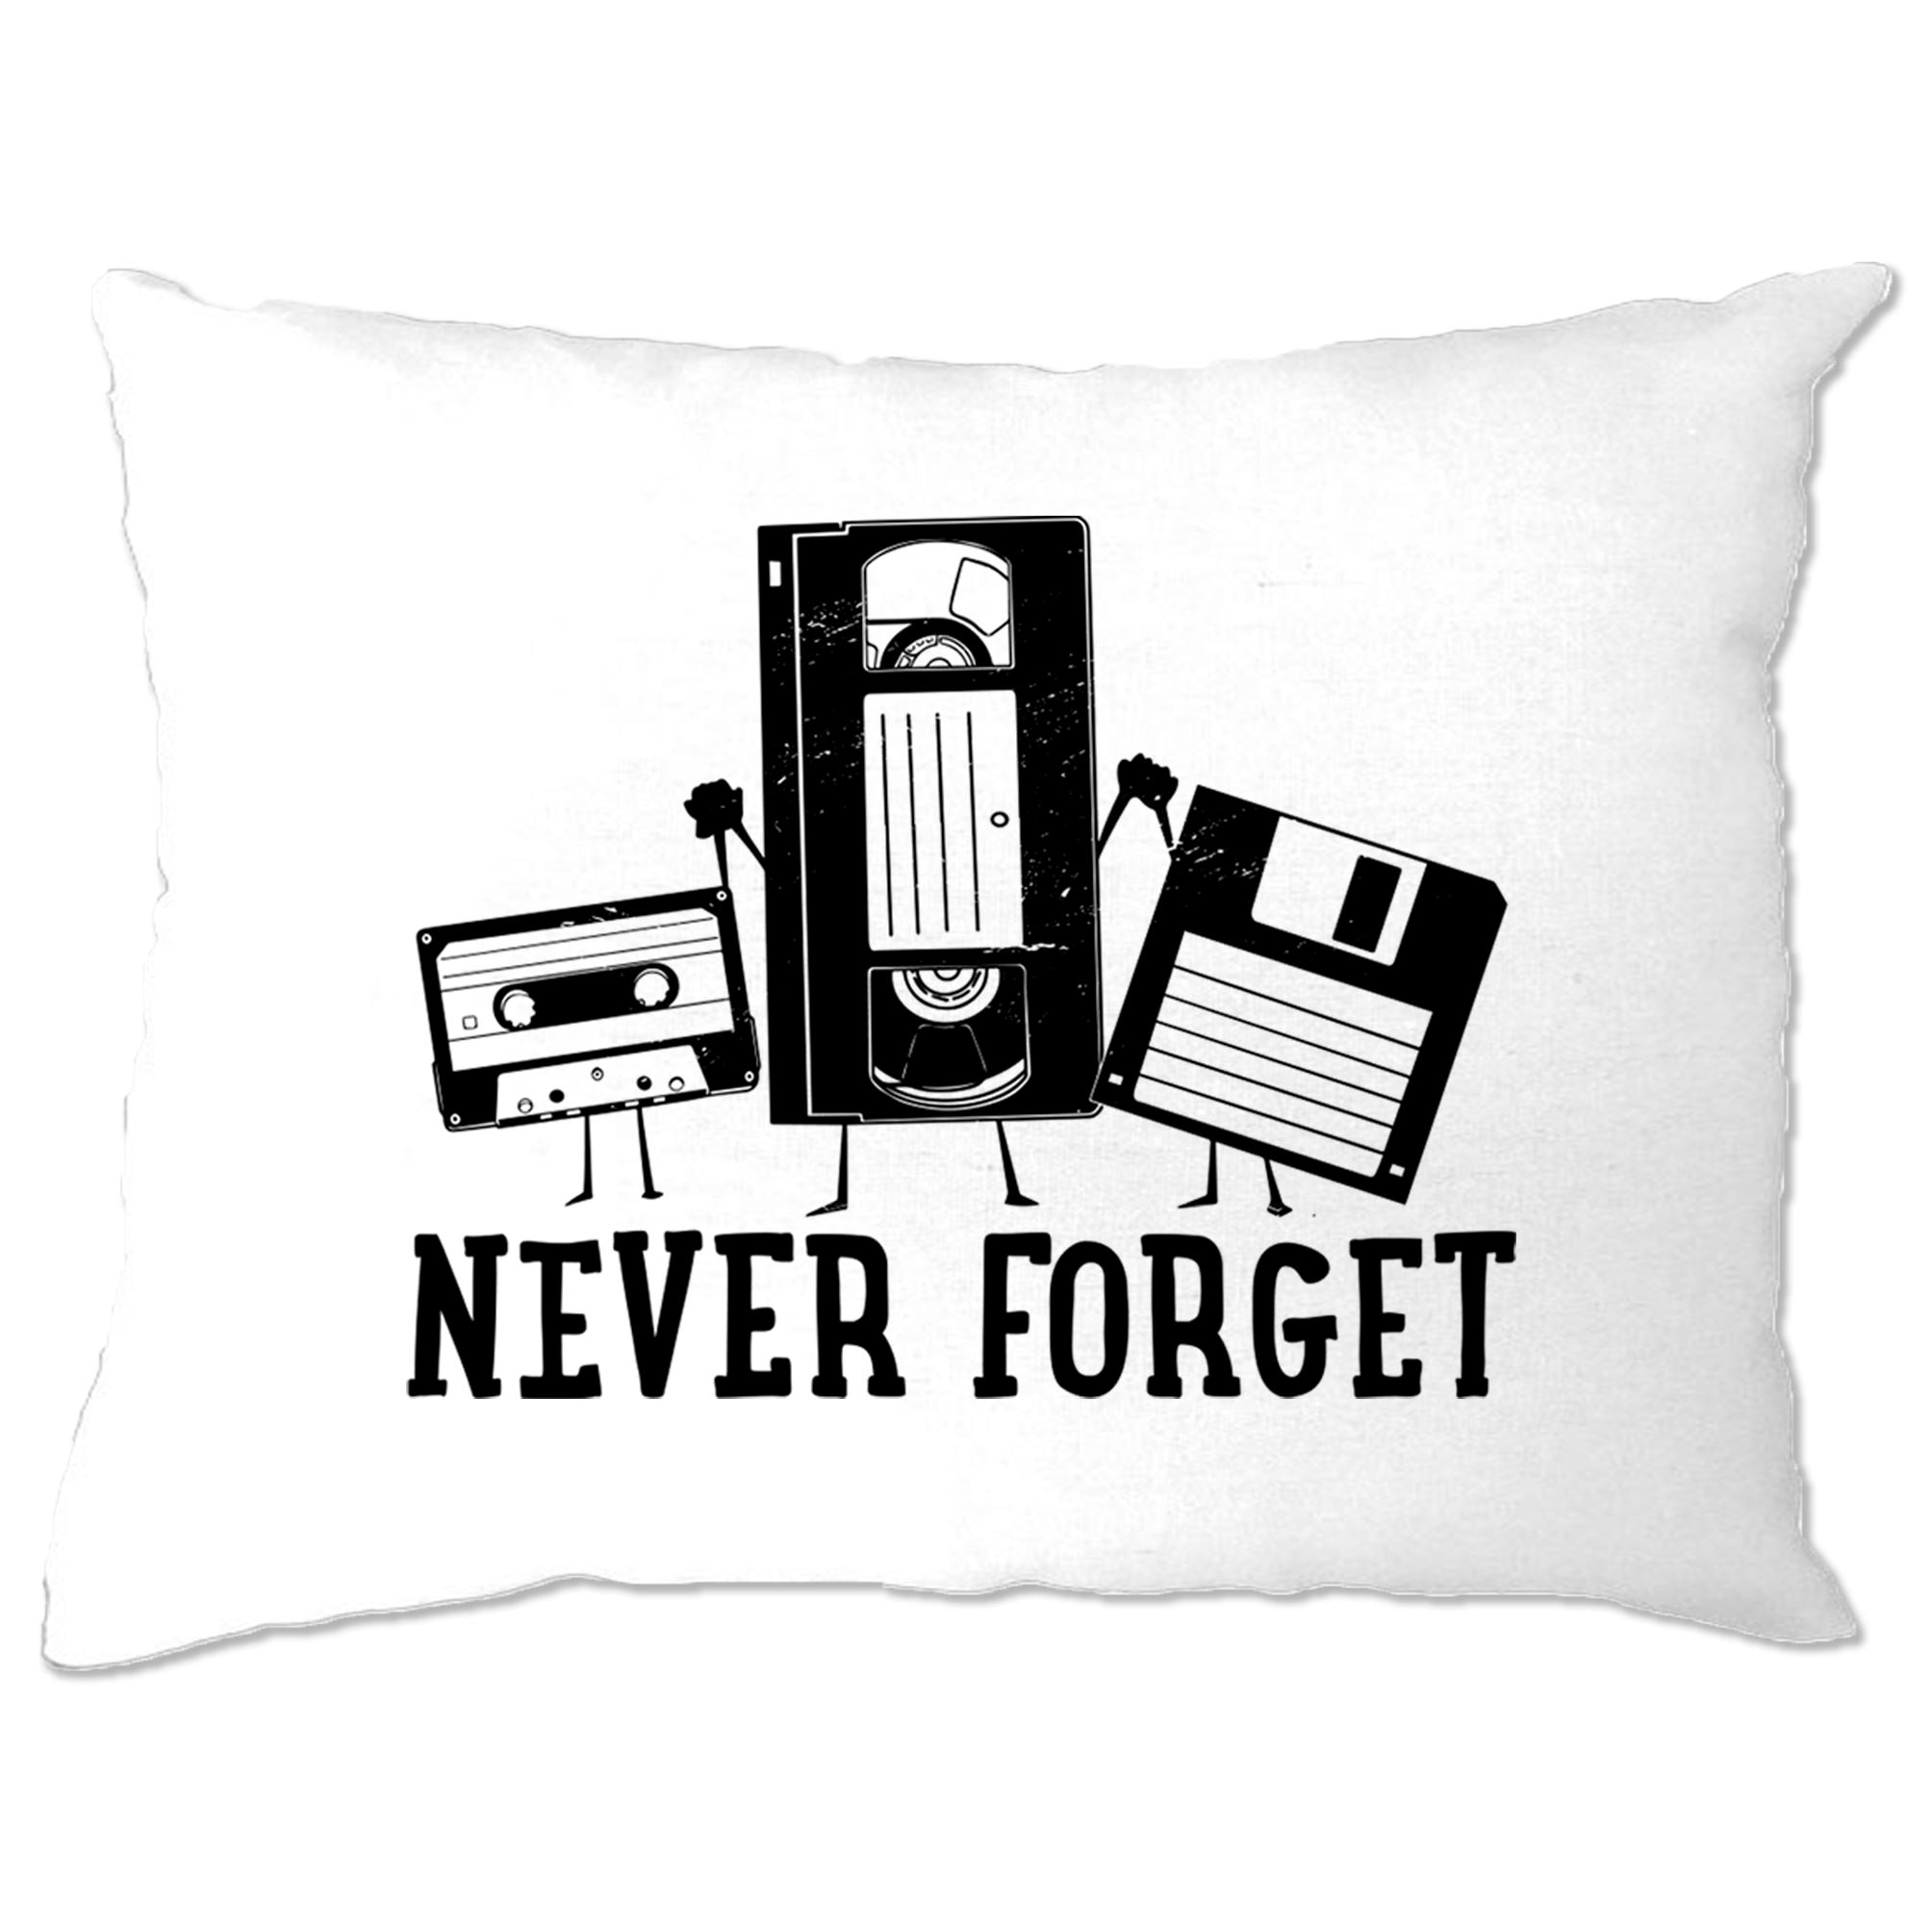 Retro Pillow Case Never Forget VHS and Floppy Discs